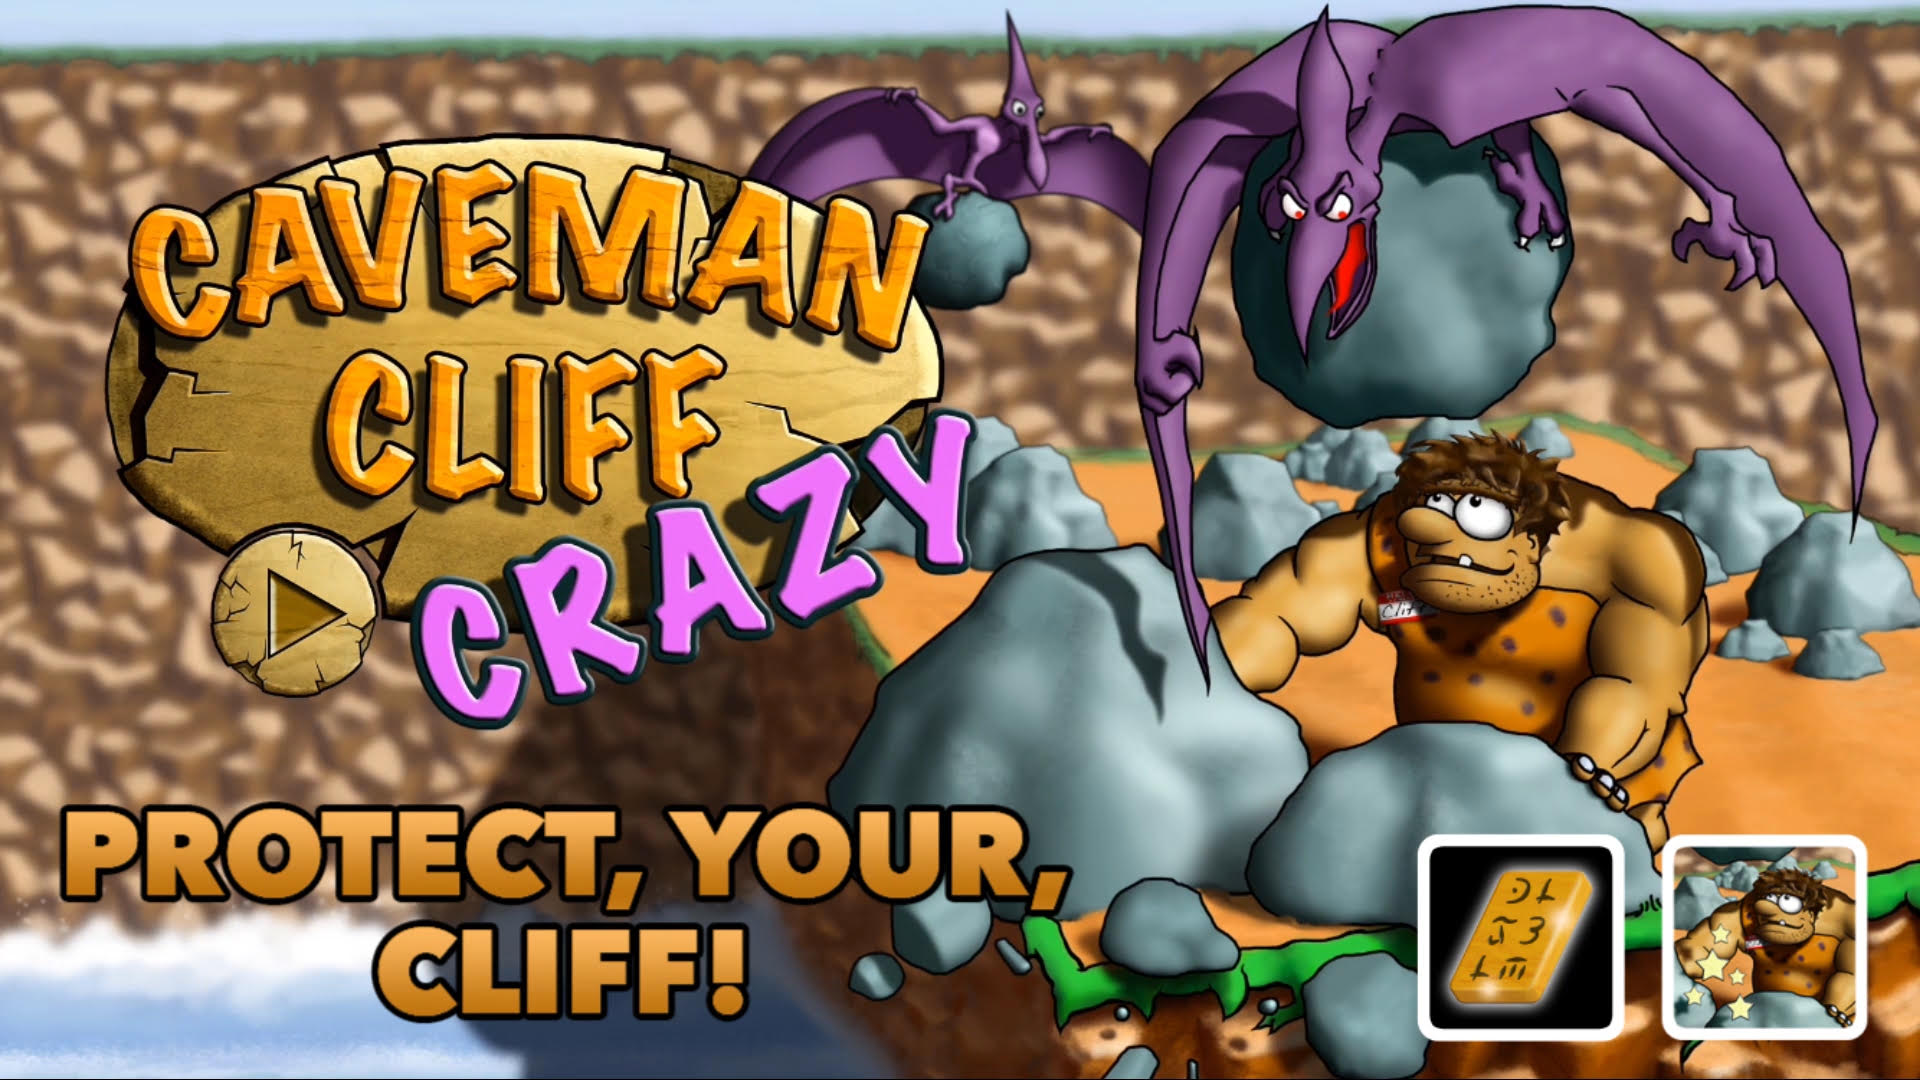 Caveman Cliff CRAZY 1